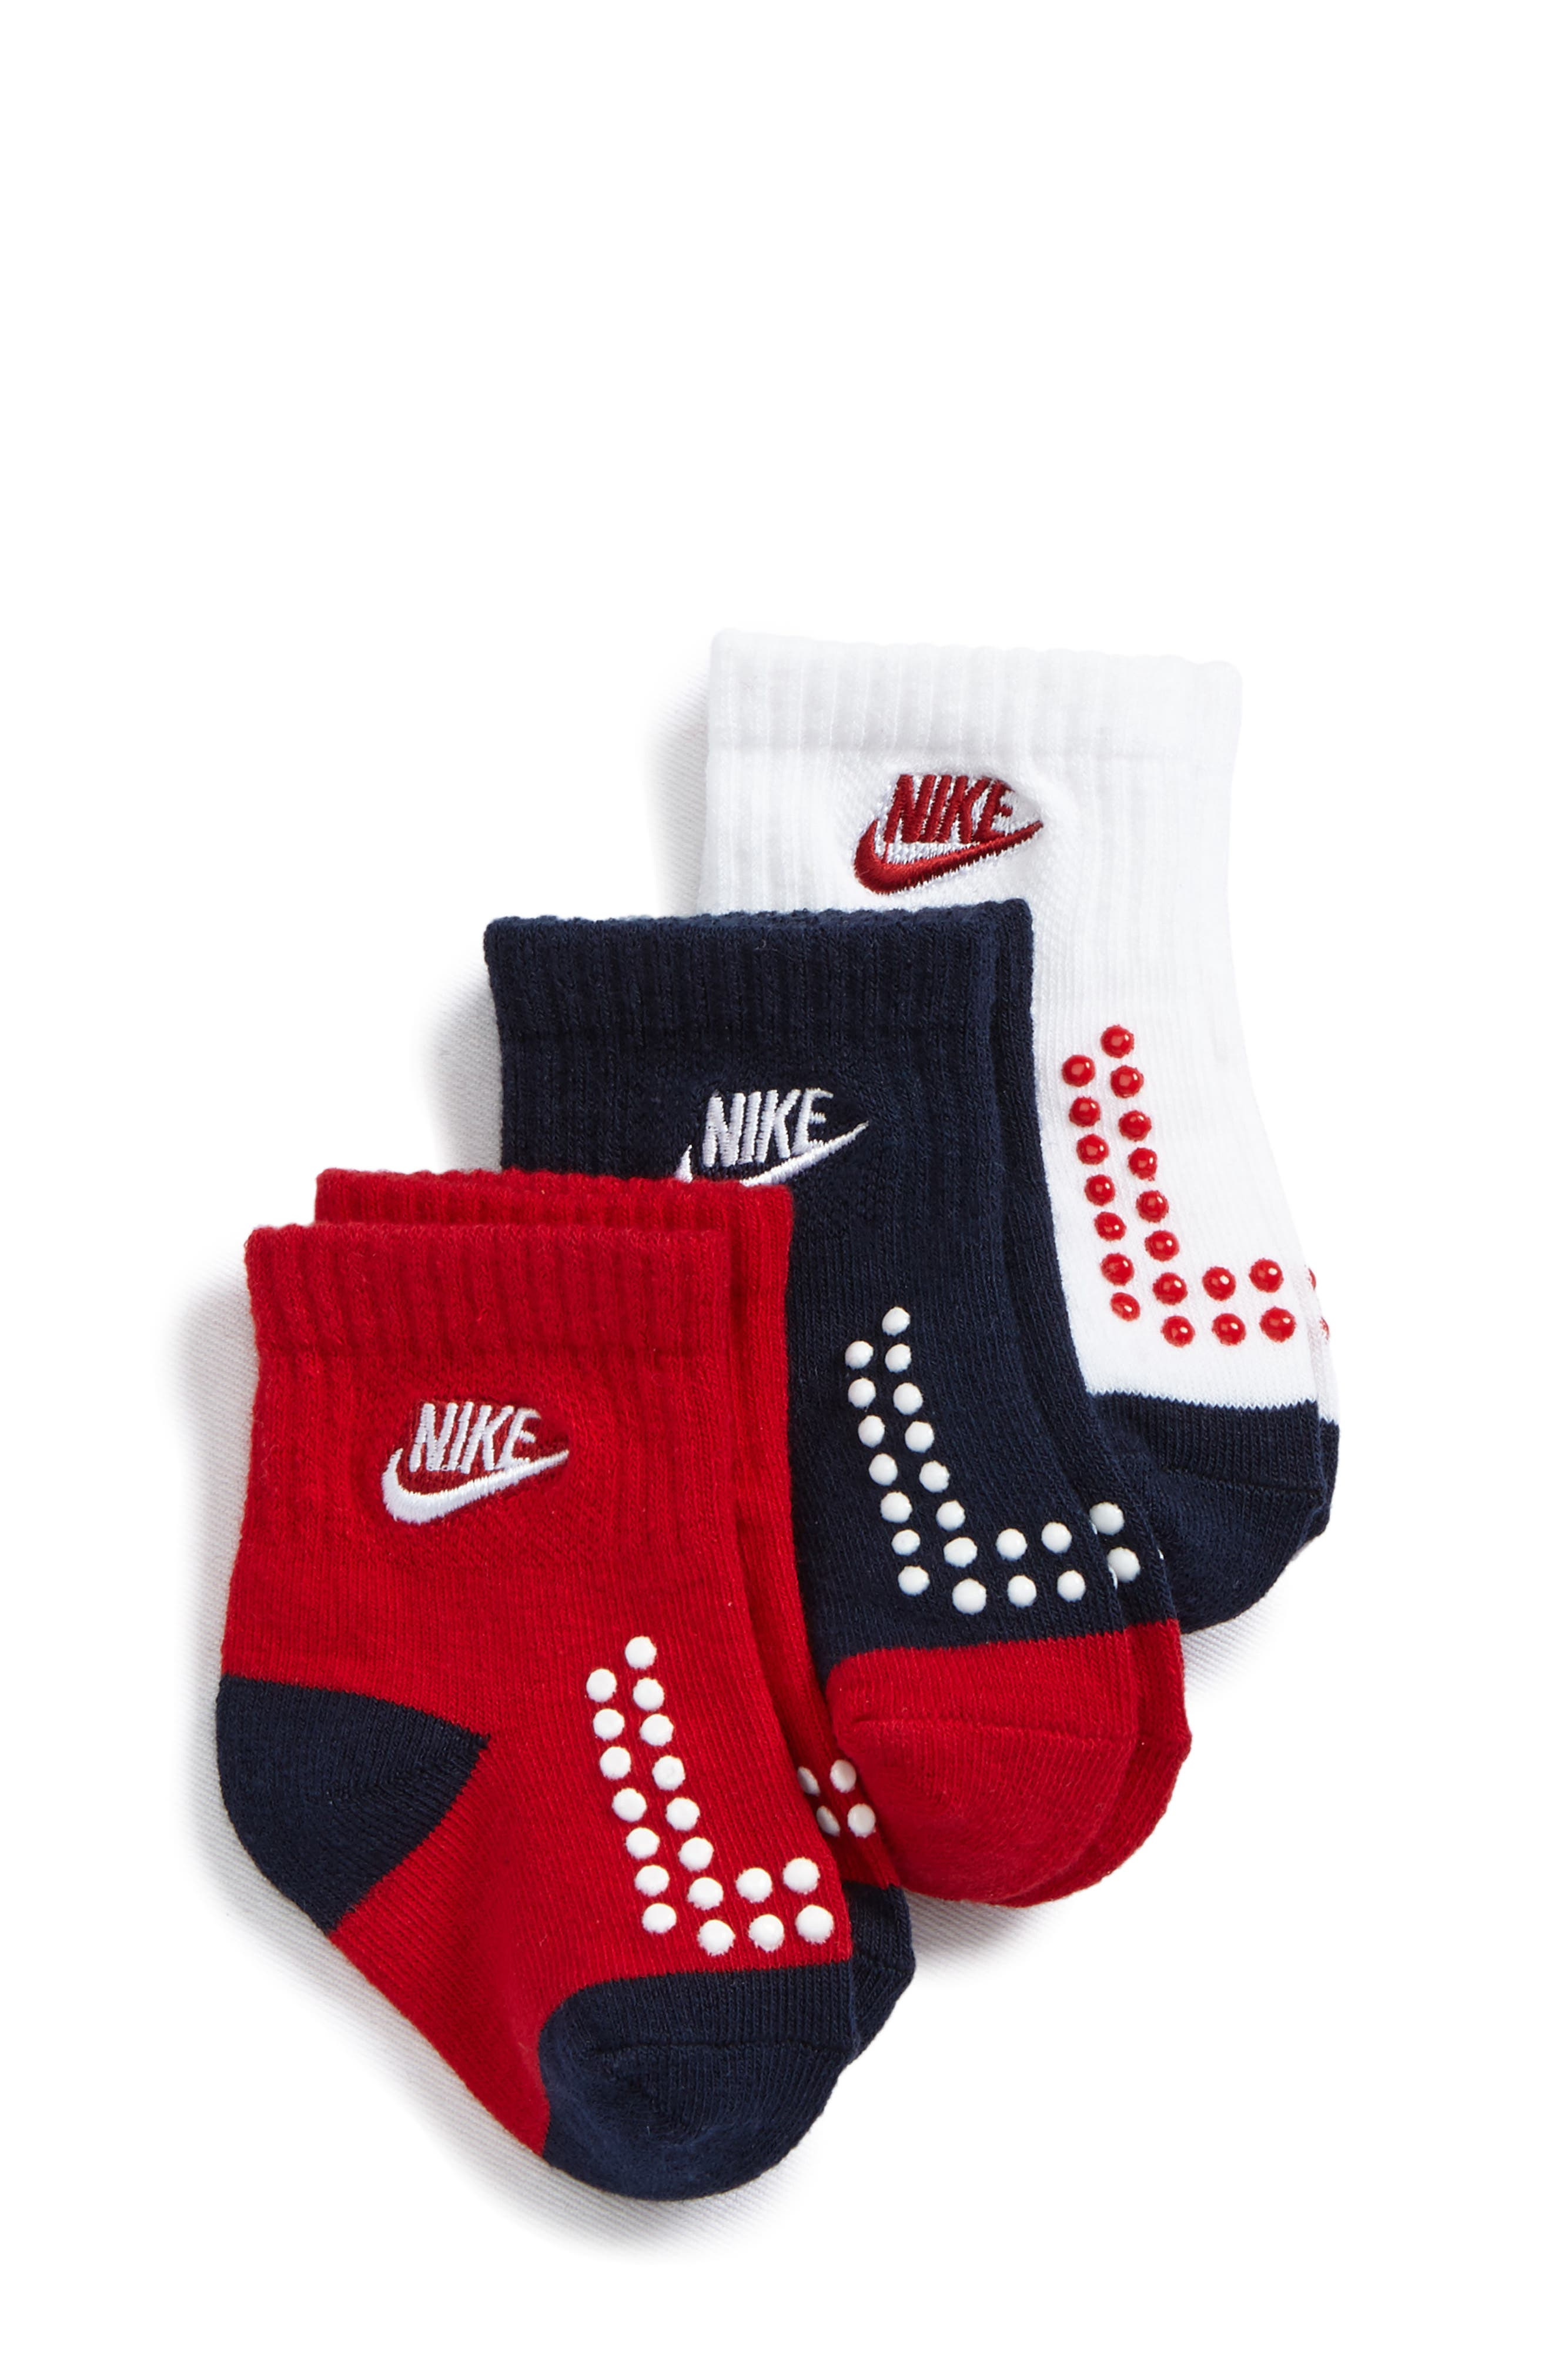 Futura 3-Pack Gripper Socks,                         Main,                         color, GYM RED